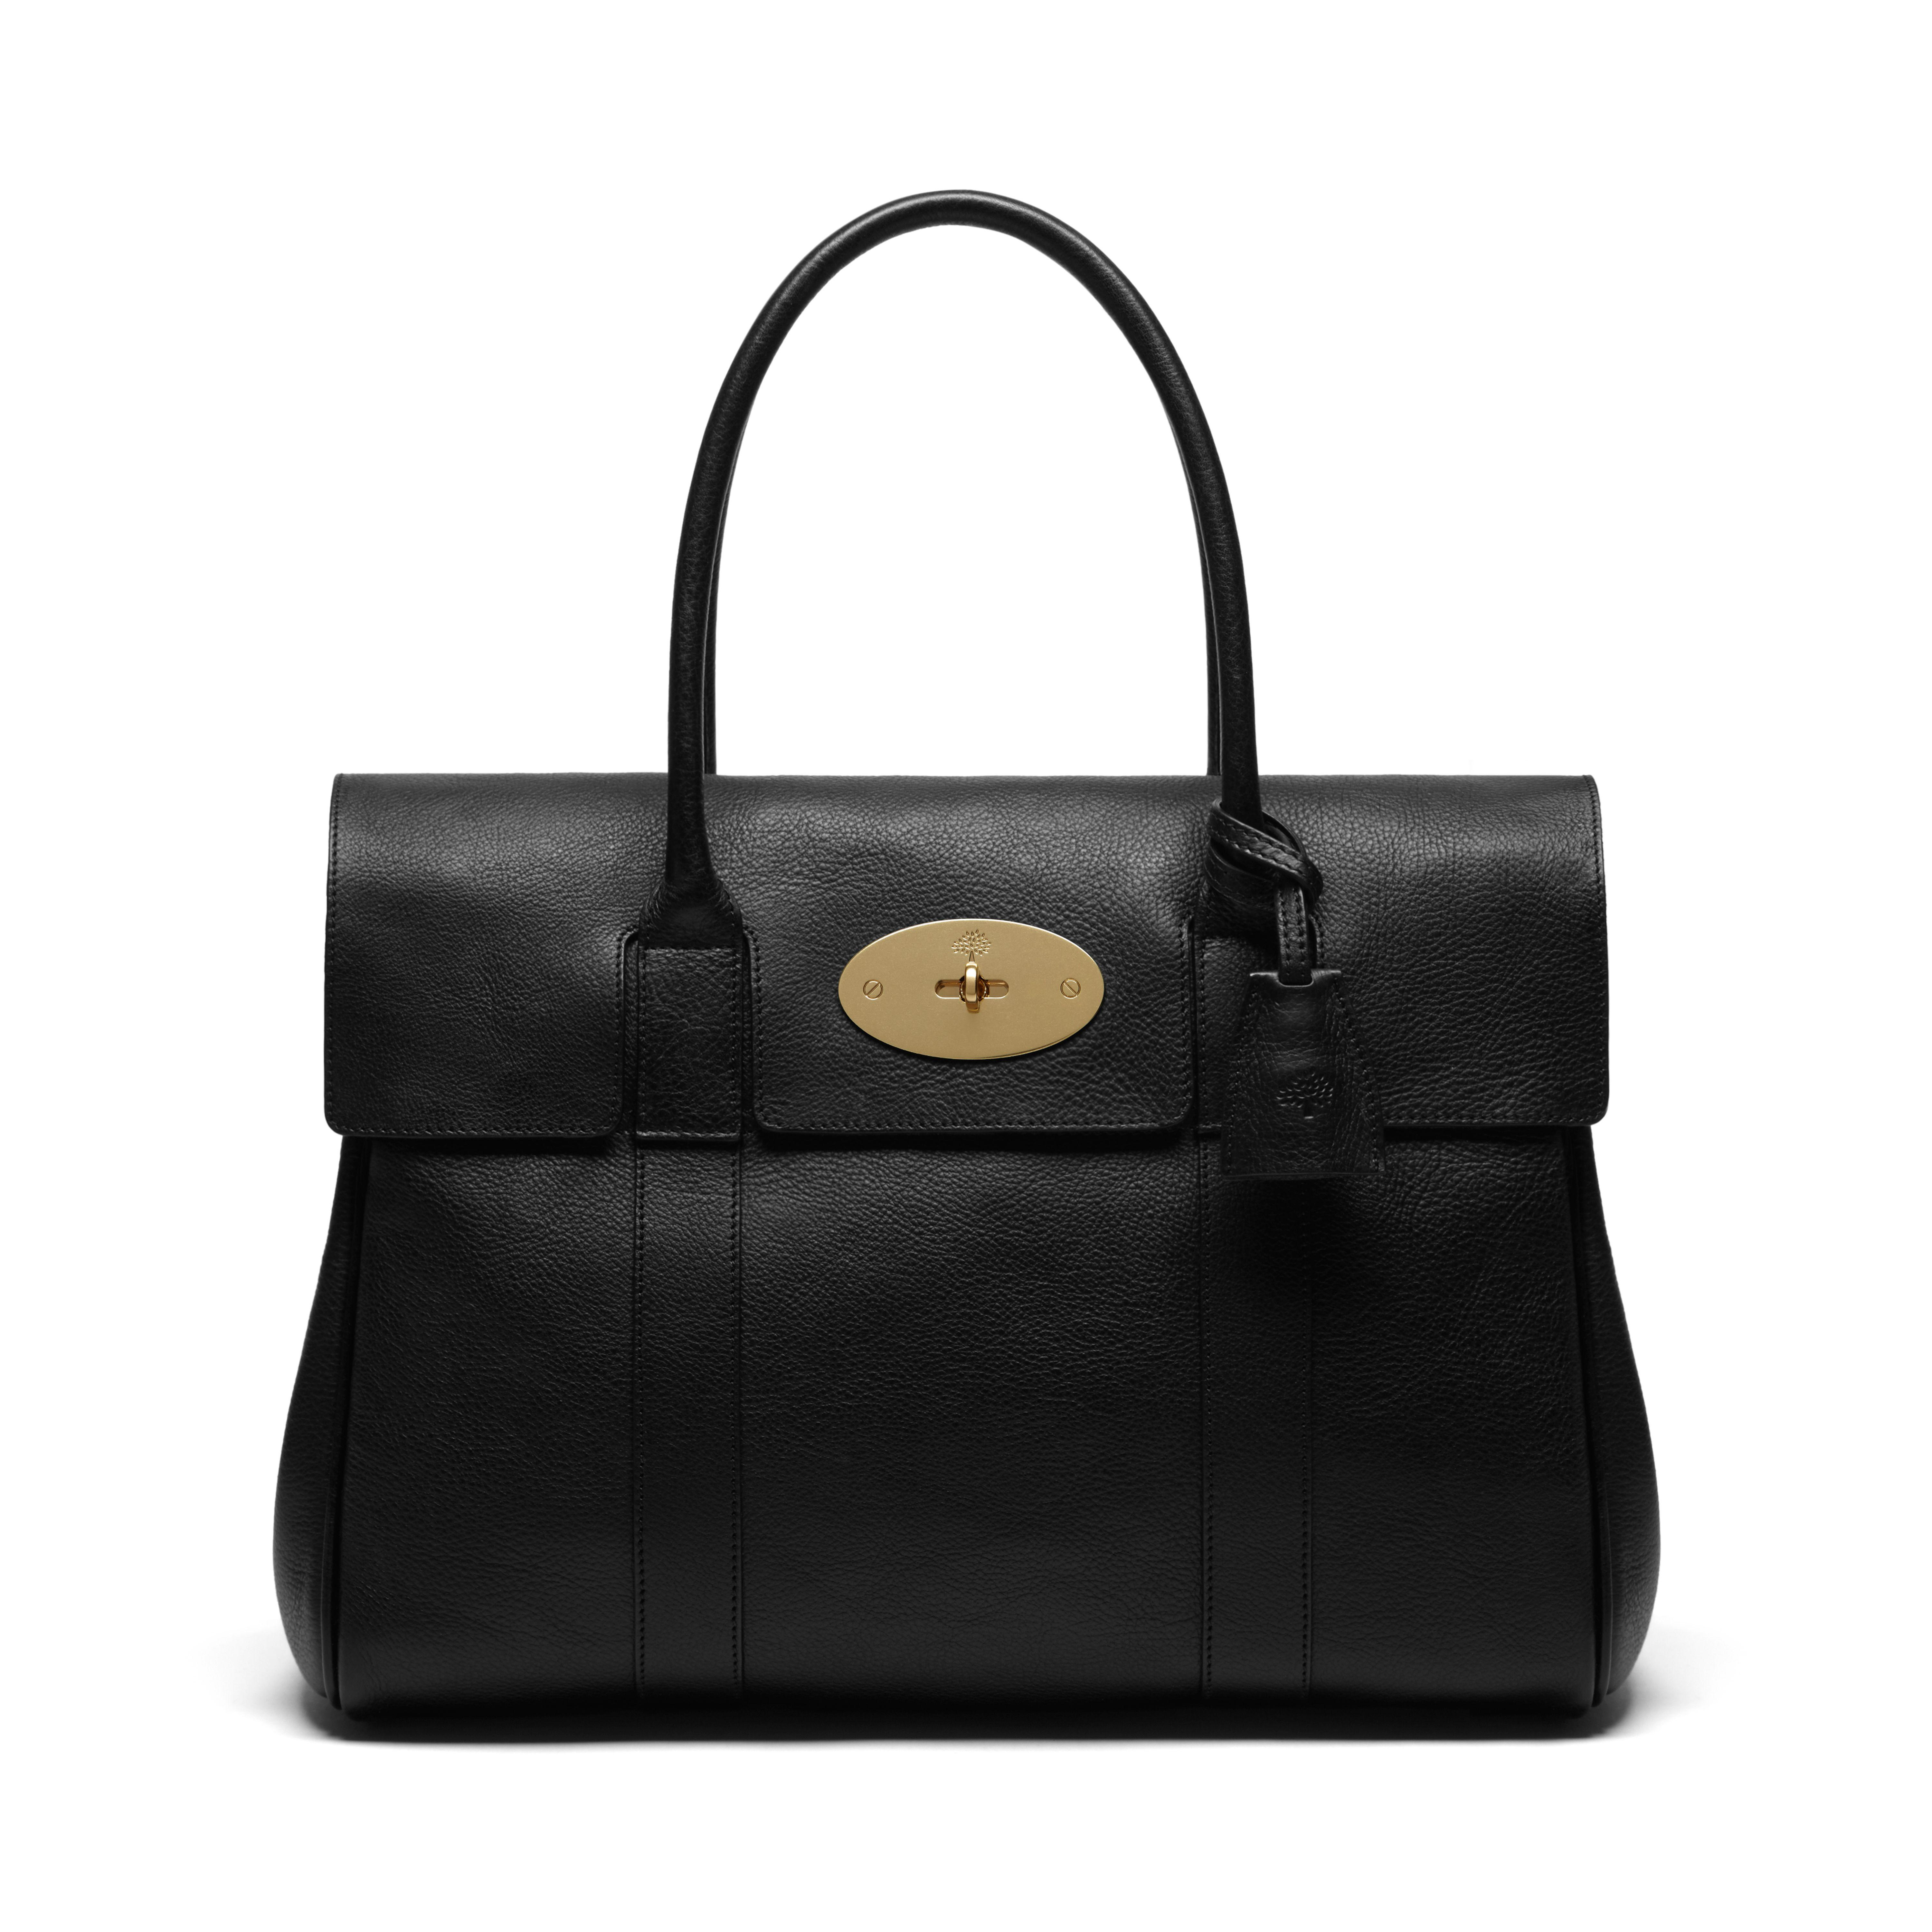 ffc83137f7 Mulberry Bayswater Leather Bag in Black